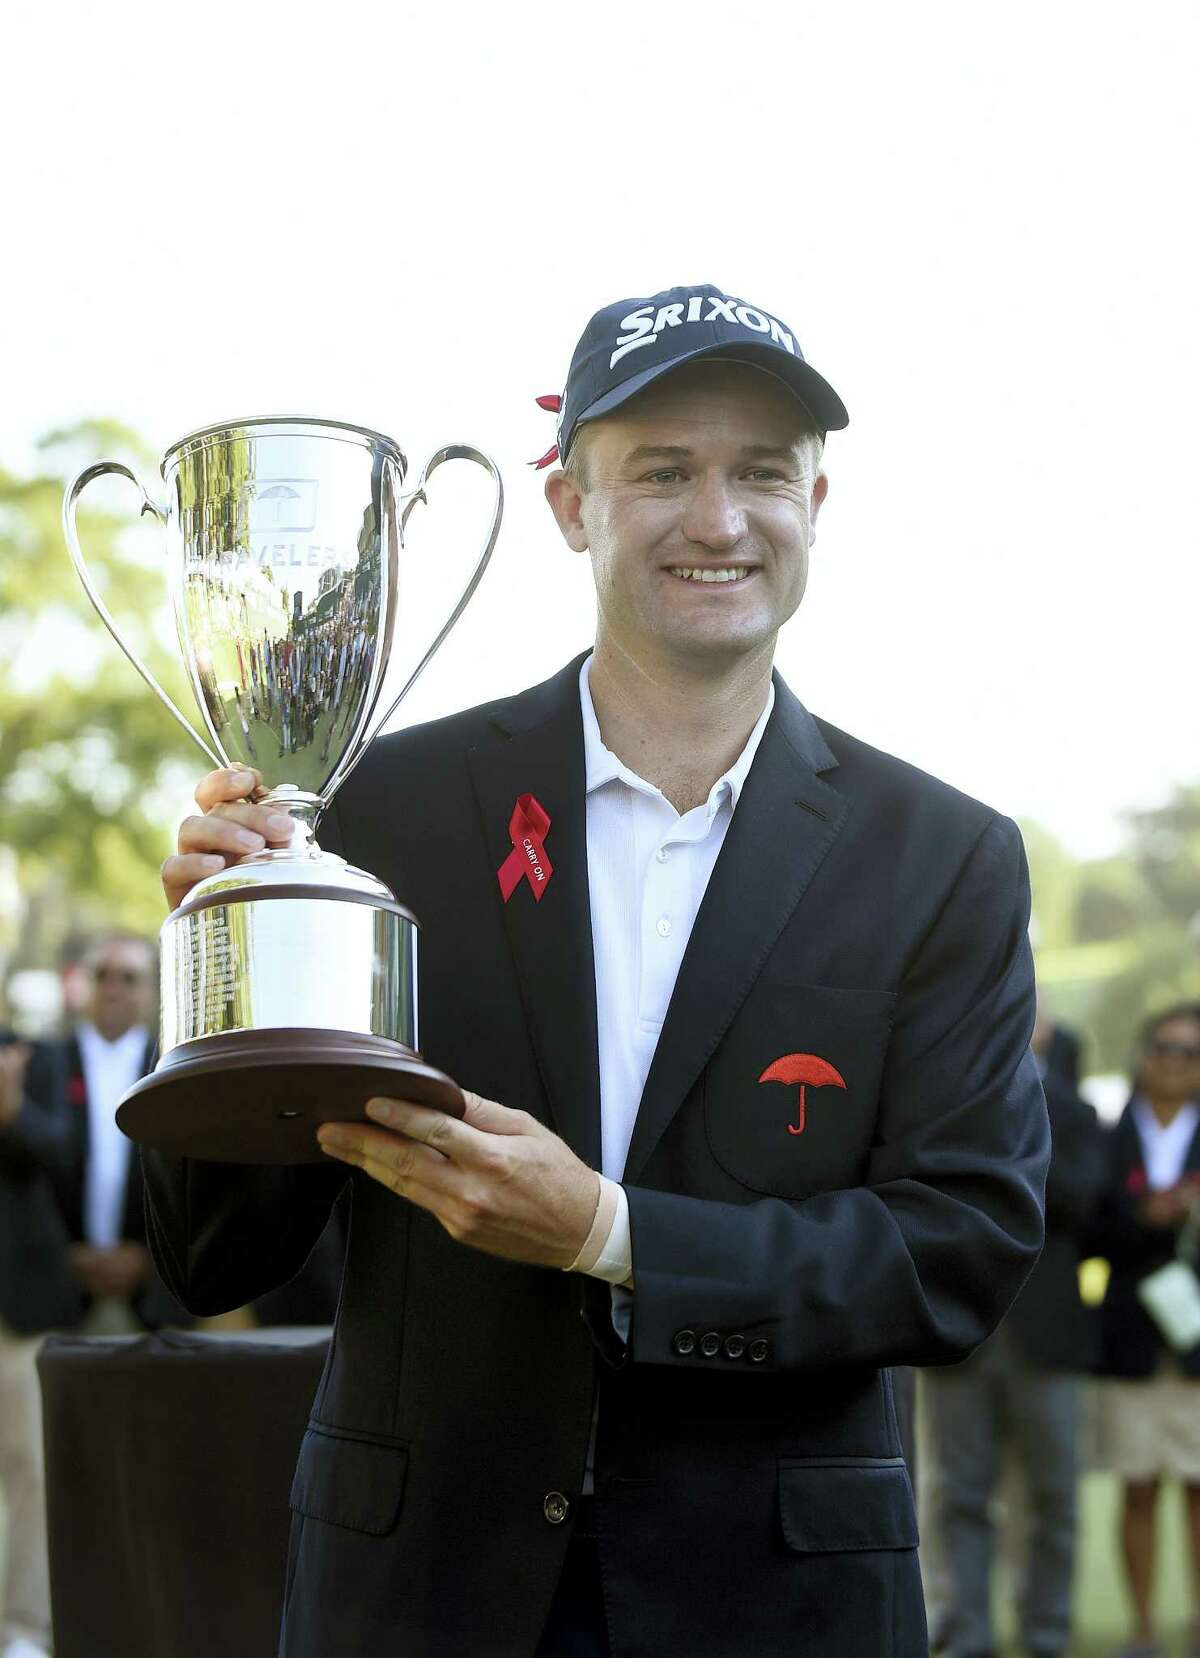 Russell Knox holds the trophy after winning the Travelers Championship golf tournament last August in Cromwell.